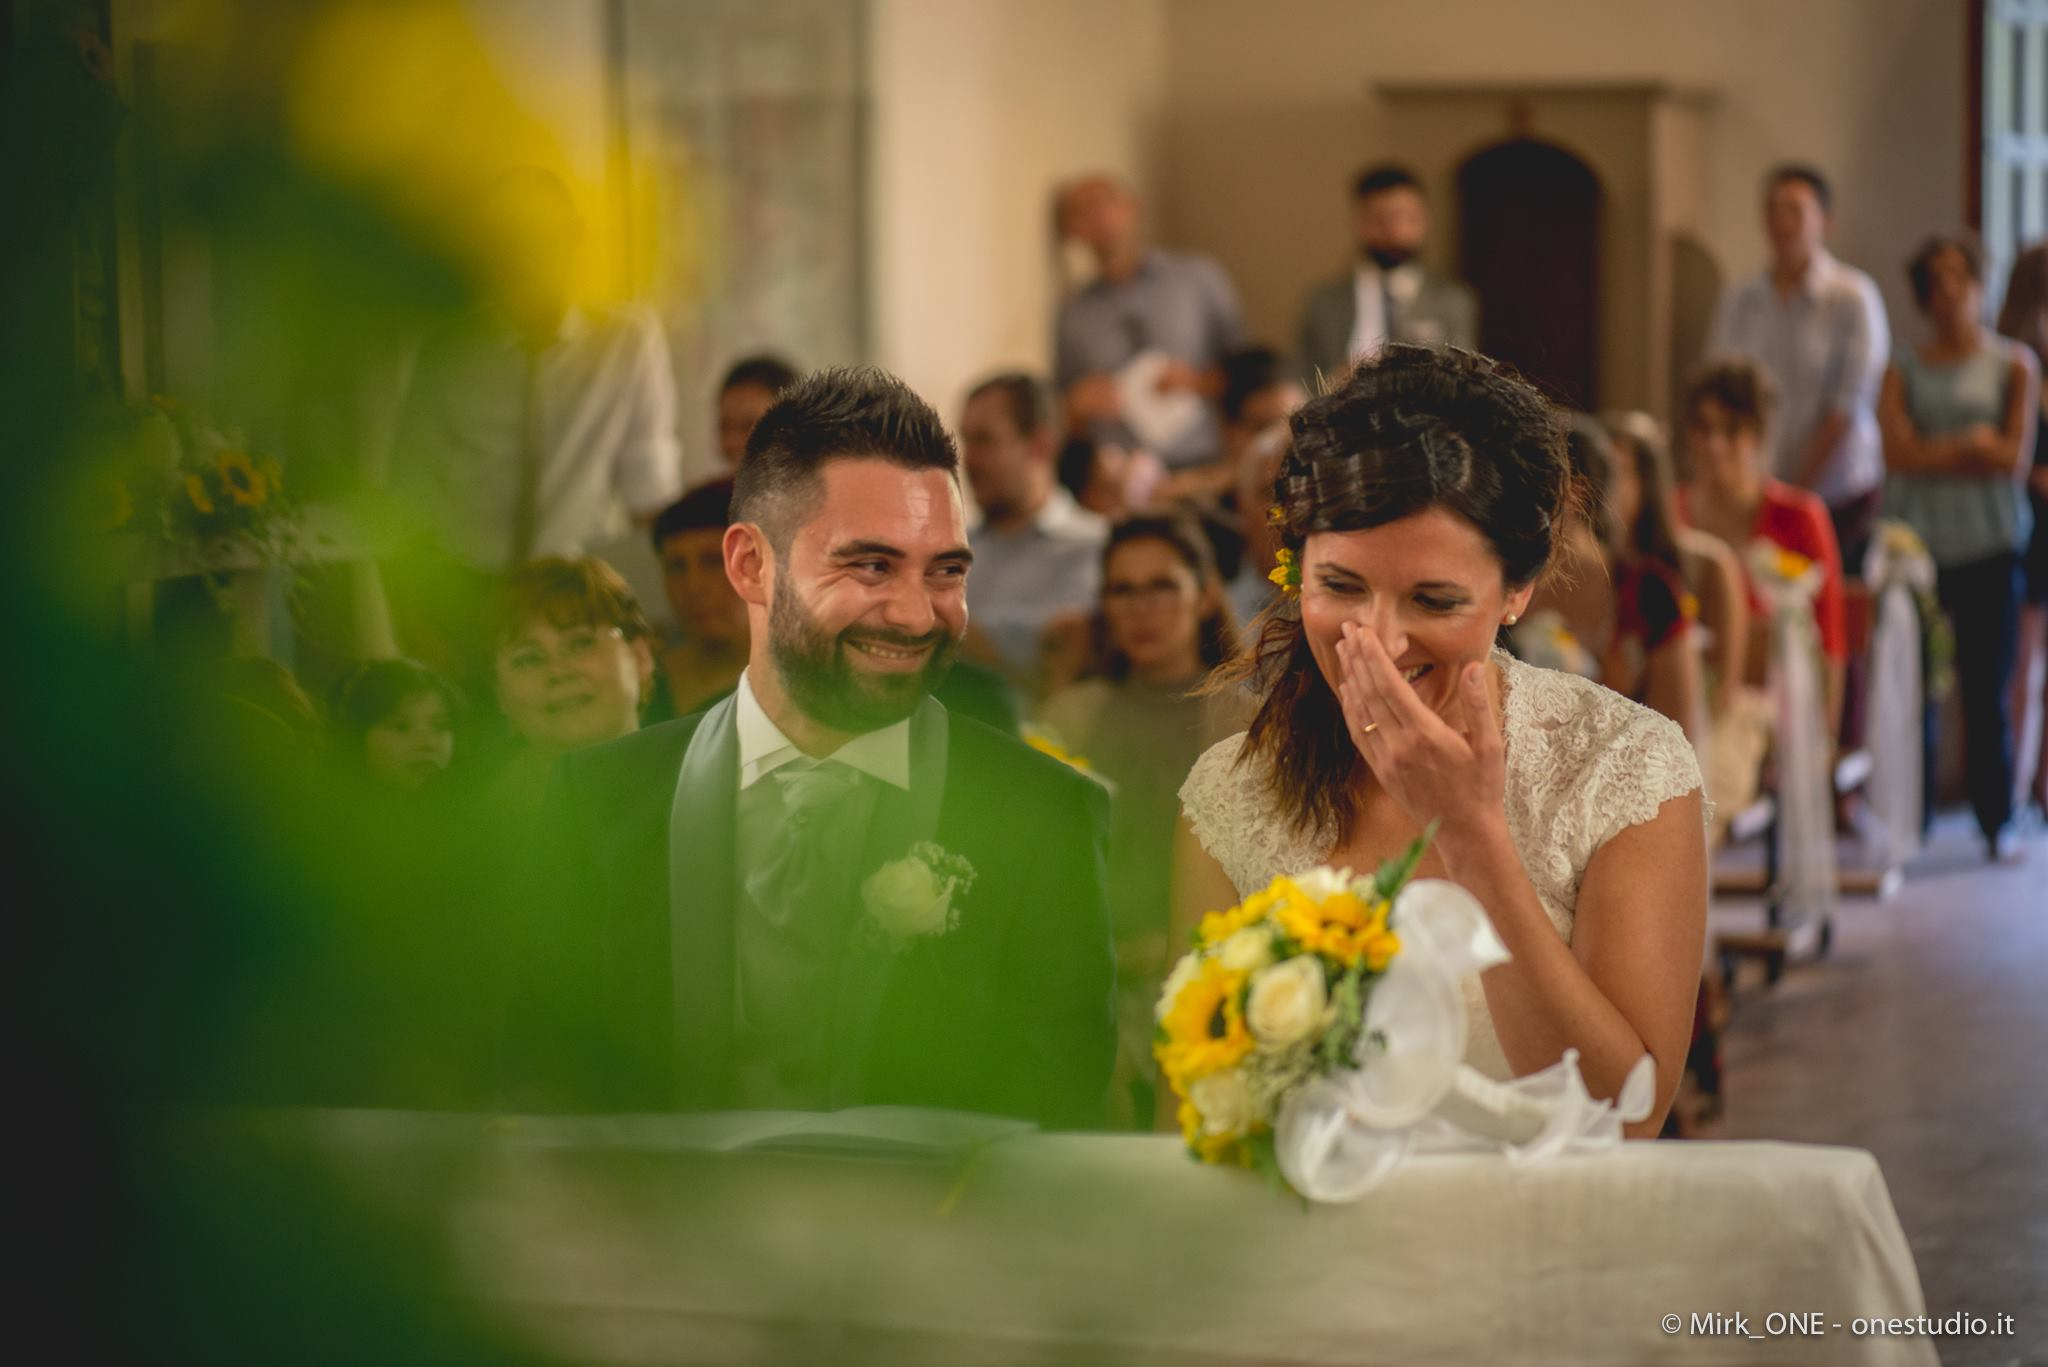 http://lnx.mirkone.it/wp-content/uploads/2015/07/mirk_ONE-fotografo-matrimonio-00864.jpg